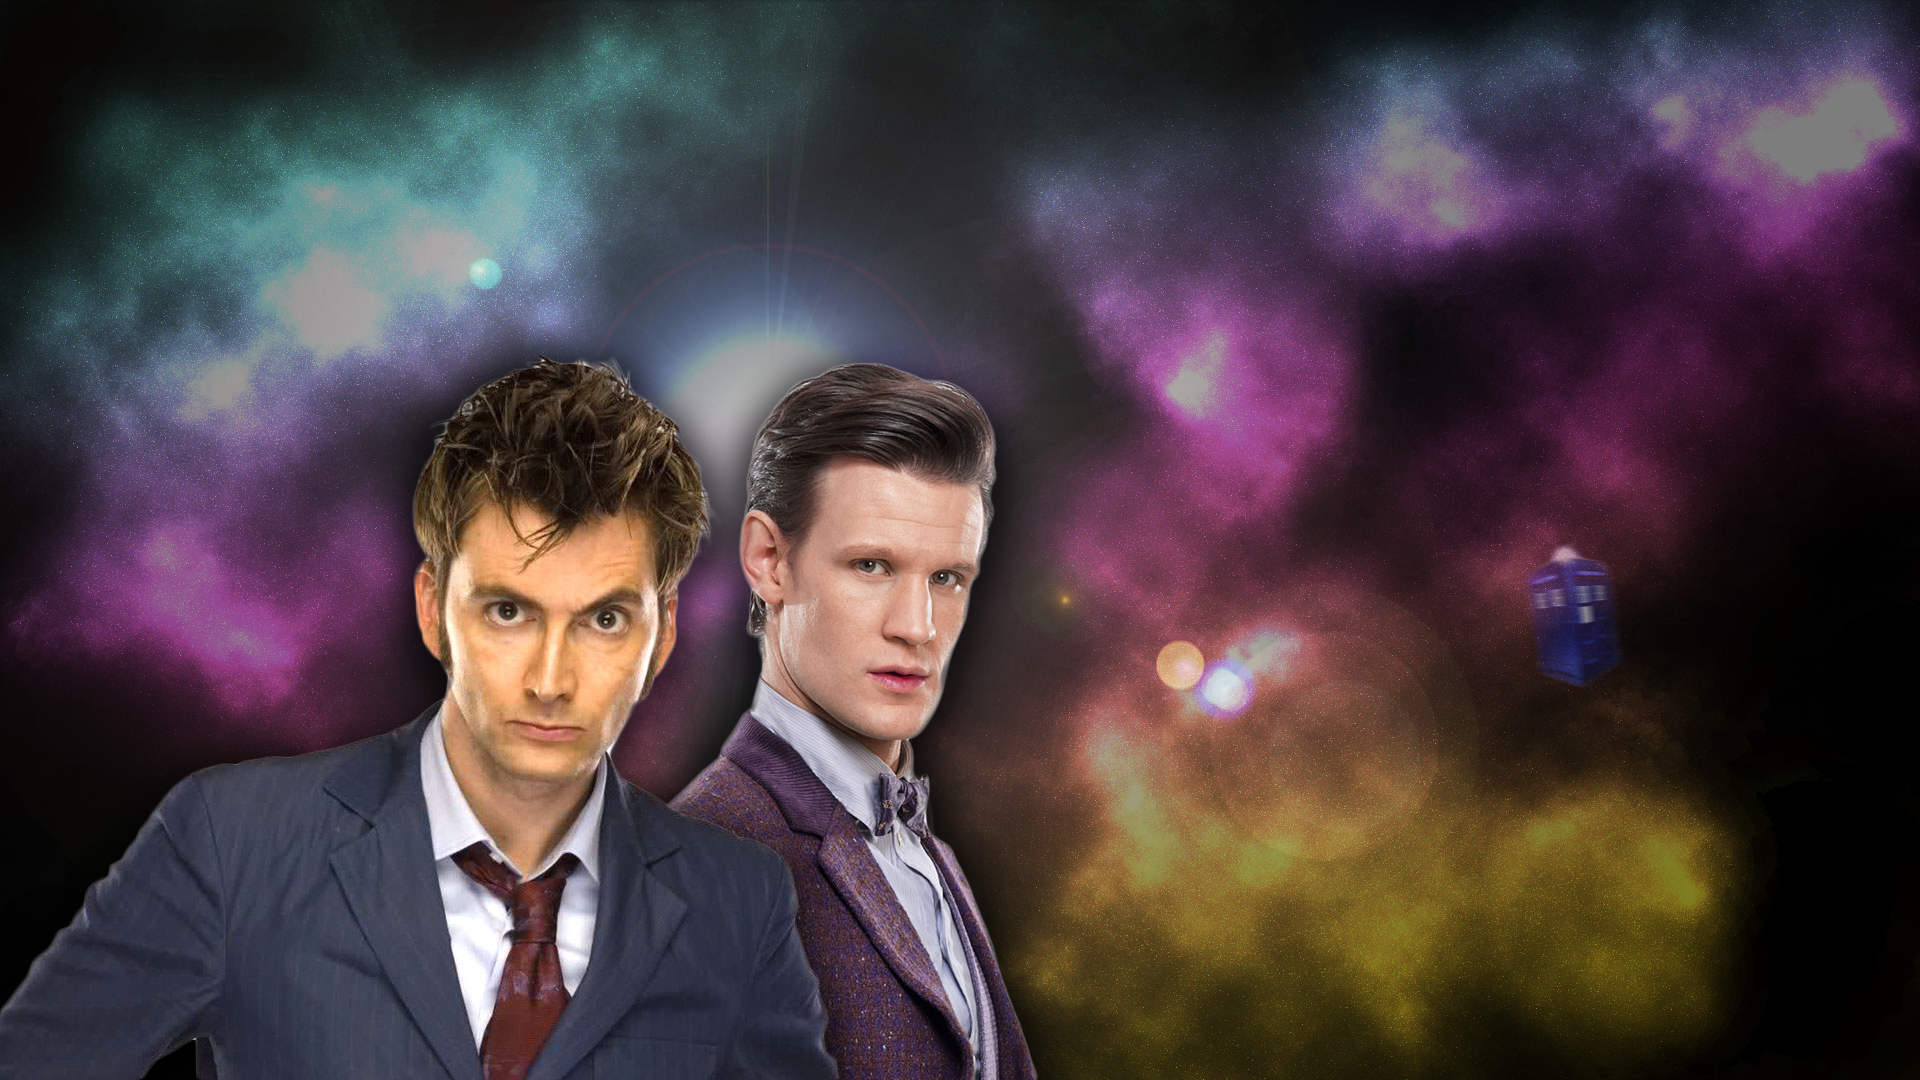 73 Doctor Who Wallpaper Matt Smith On Wallpapersafari